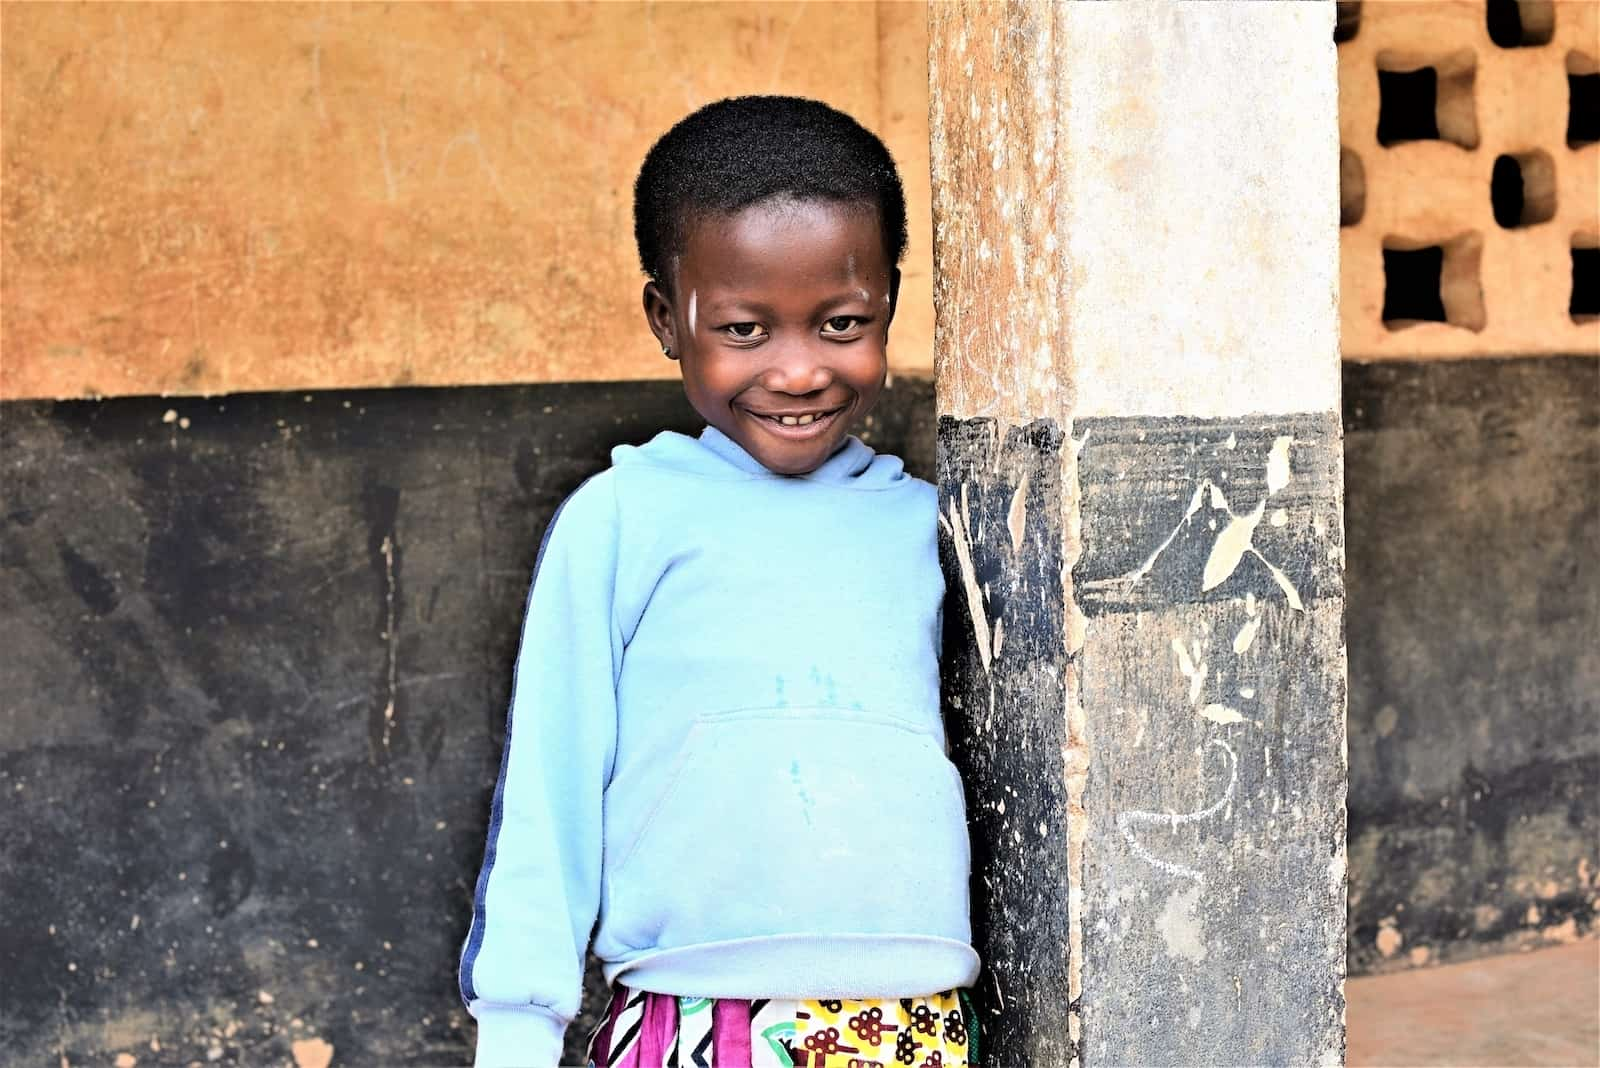 A girl who was trapped inside by a Ghana superstition wears a light blue sweatshirt and patterned dress smiles, standing next to a column in front of a black and white wall.